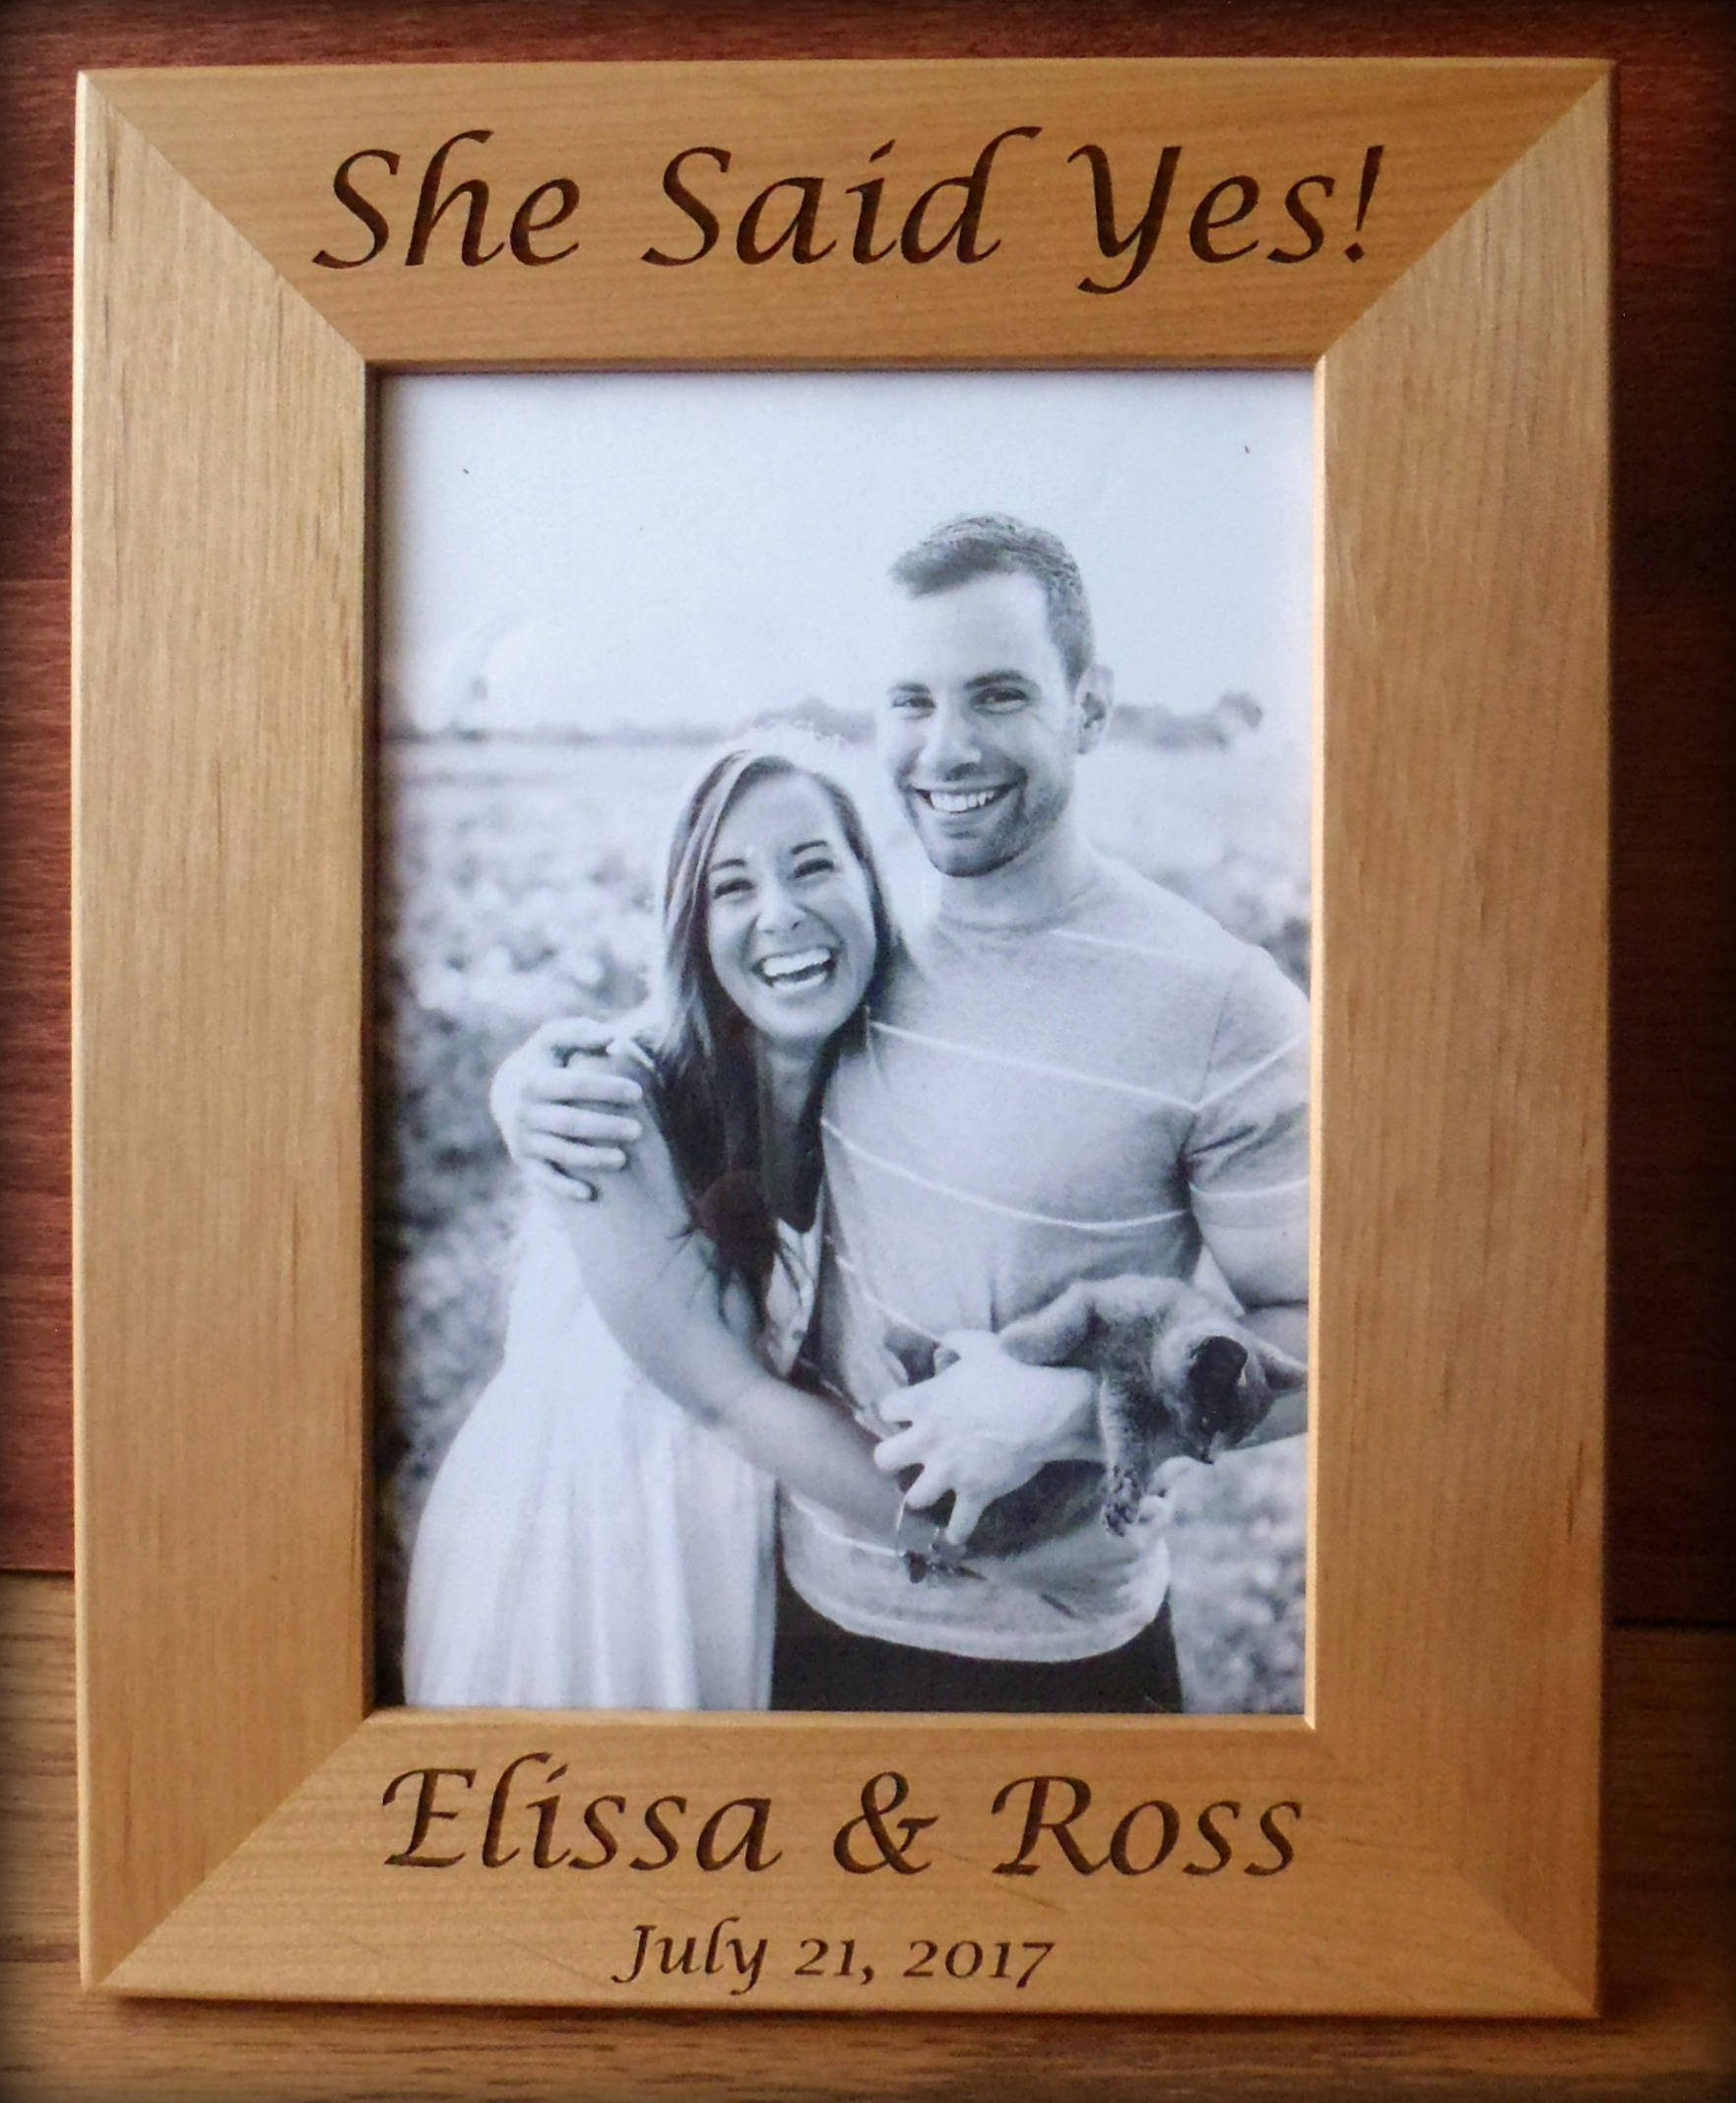 She Said Yes Picture Frame - Engagement Gifts | Emmaline Bride